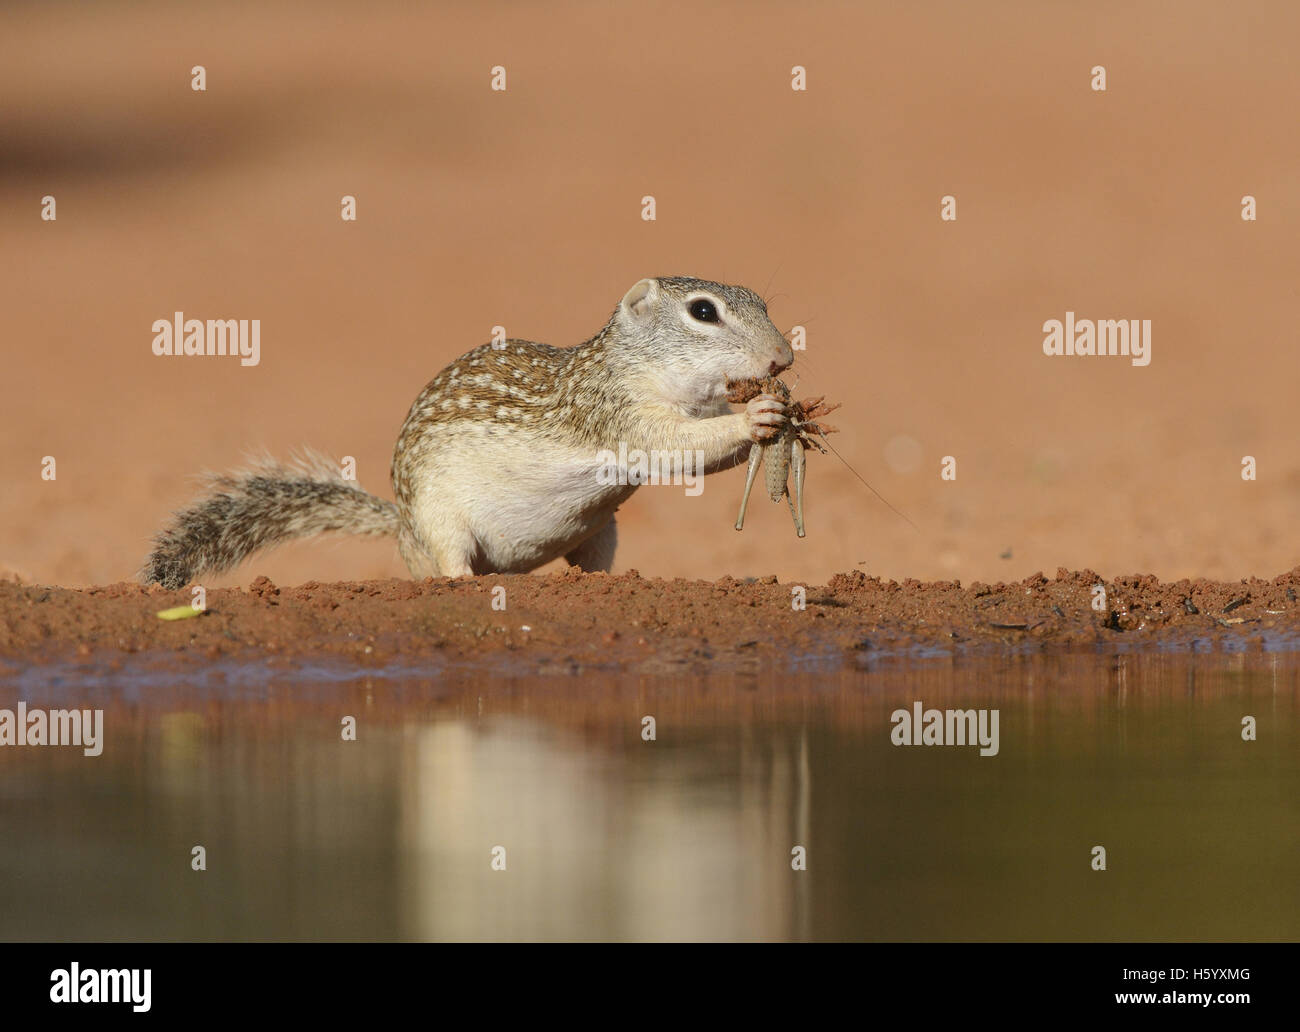 Mexican Ground Squirrel (Spermophilus mexicanus), adult eating grasshopper, South Texas, USA - Stock Image